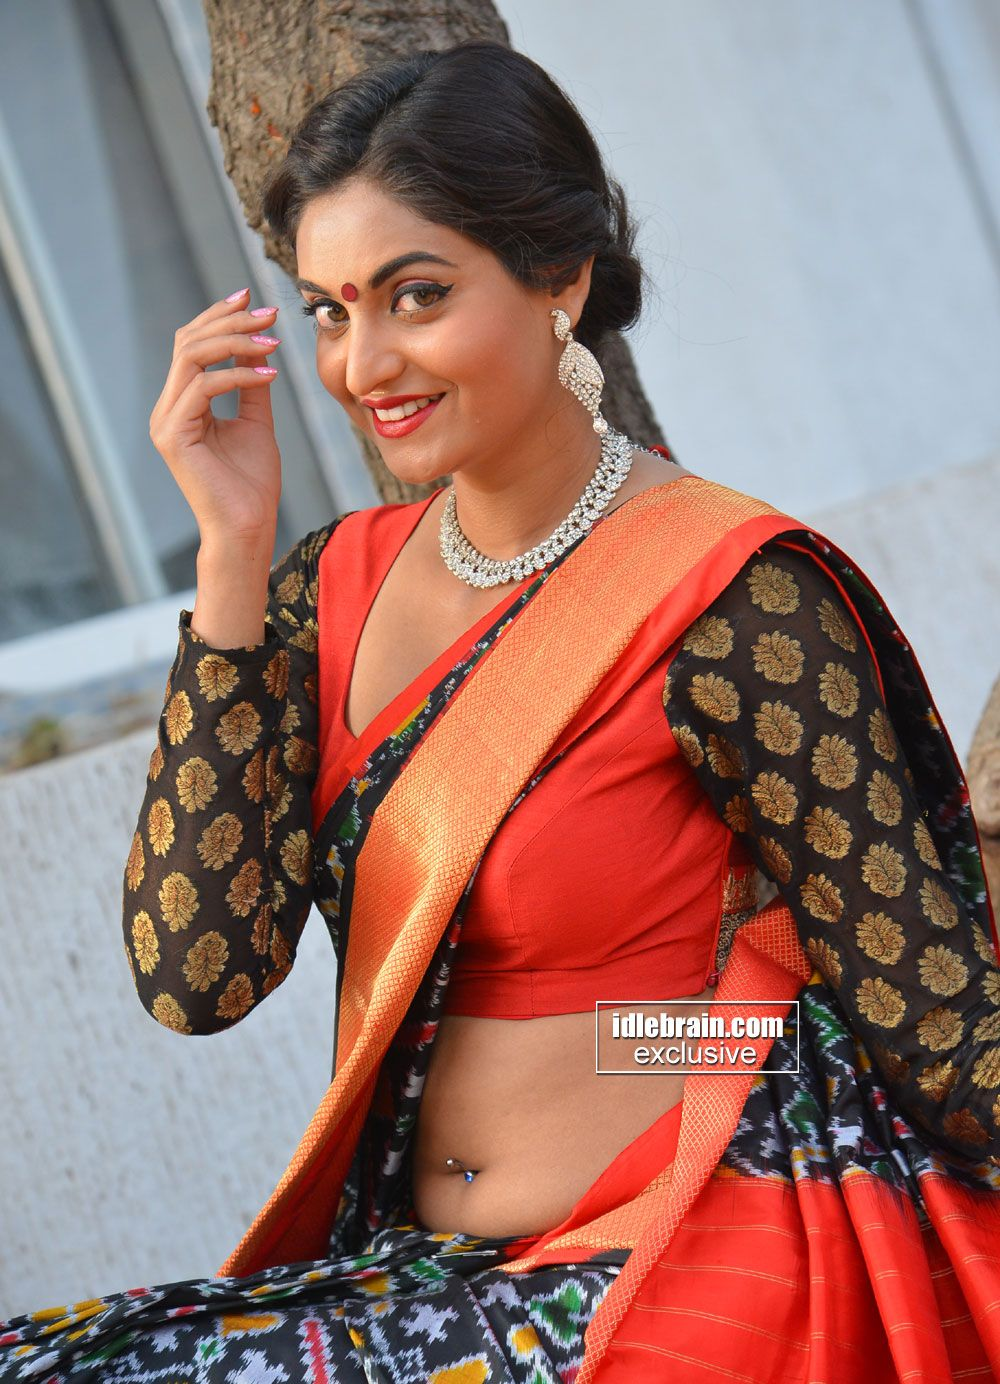 a good collections of images at one place idlebrain actress hot photos spicy pics telugu telugu movies movie gallery films saree actresses hottest photos pinterest